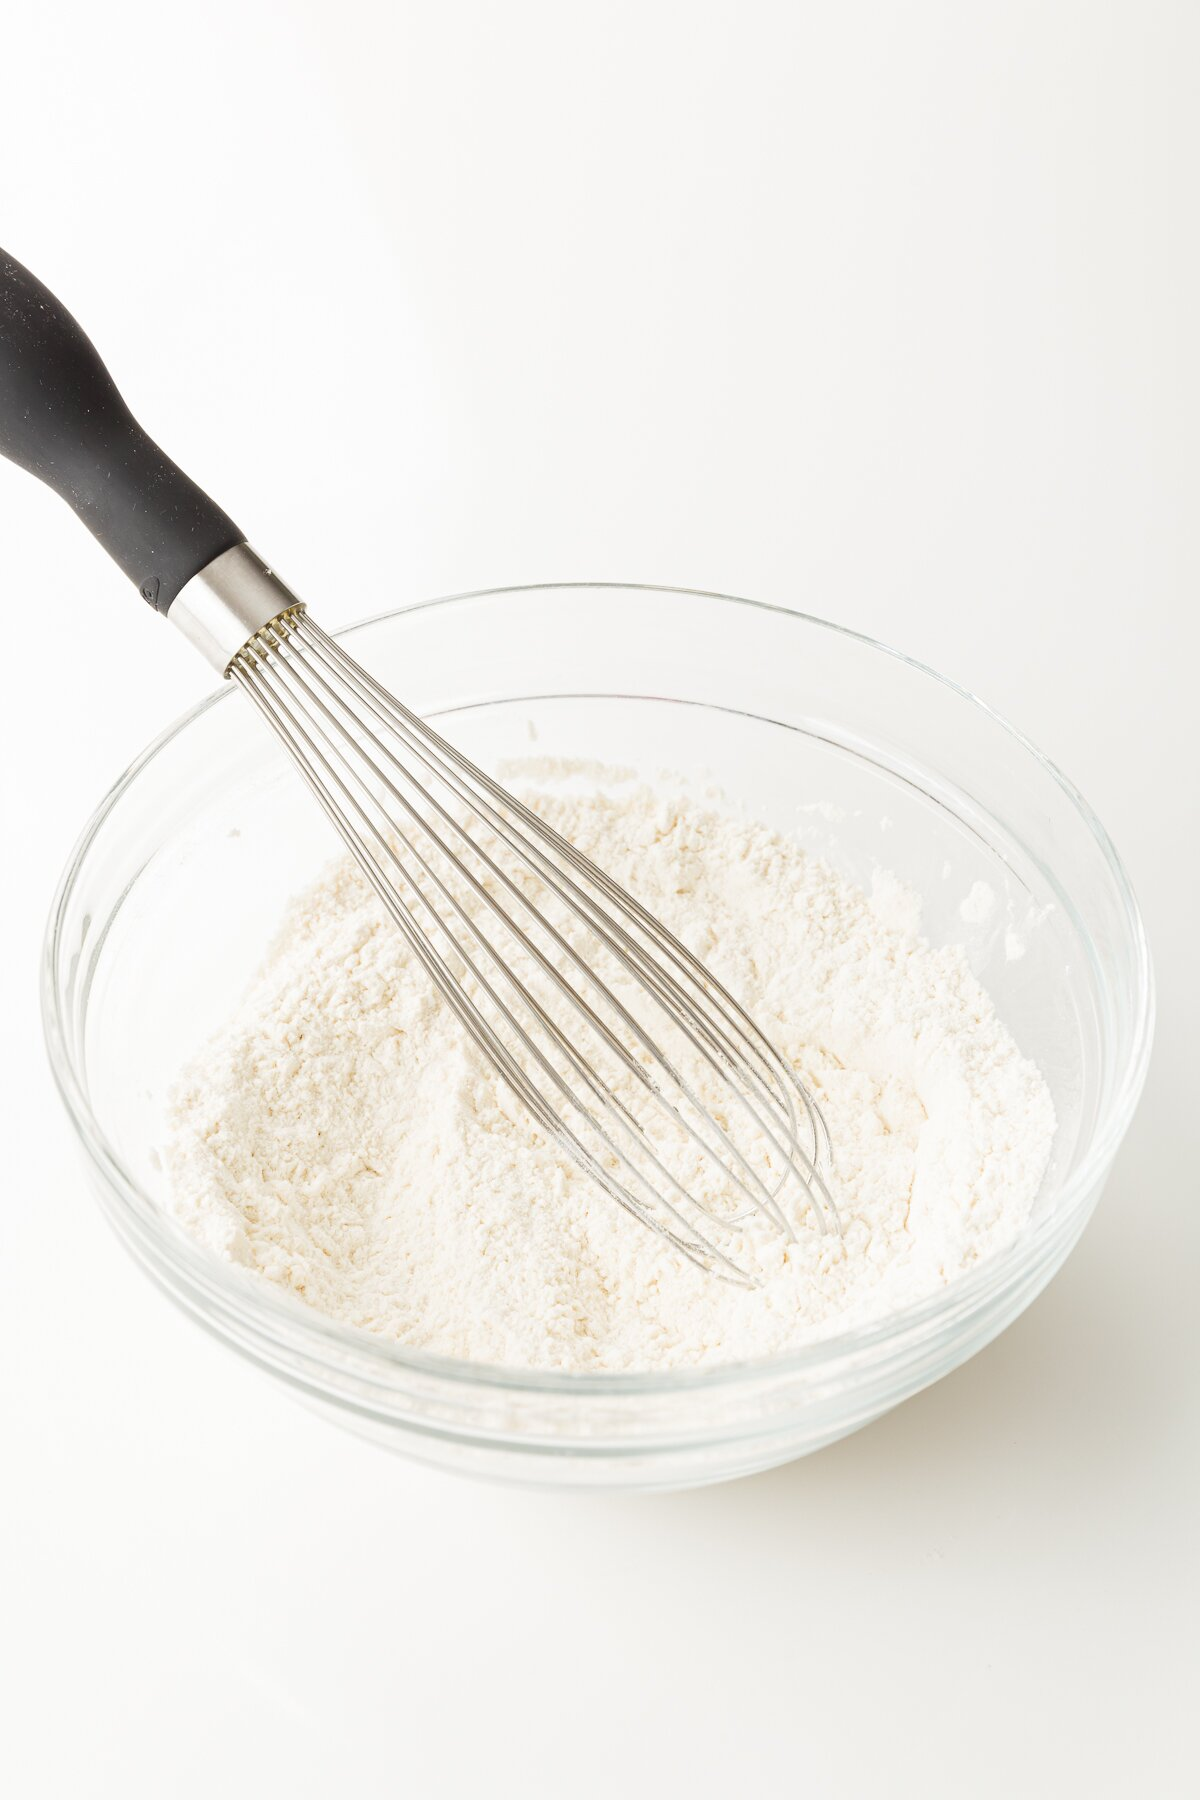 Whisking dry ingredients in a glass bowl.